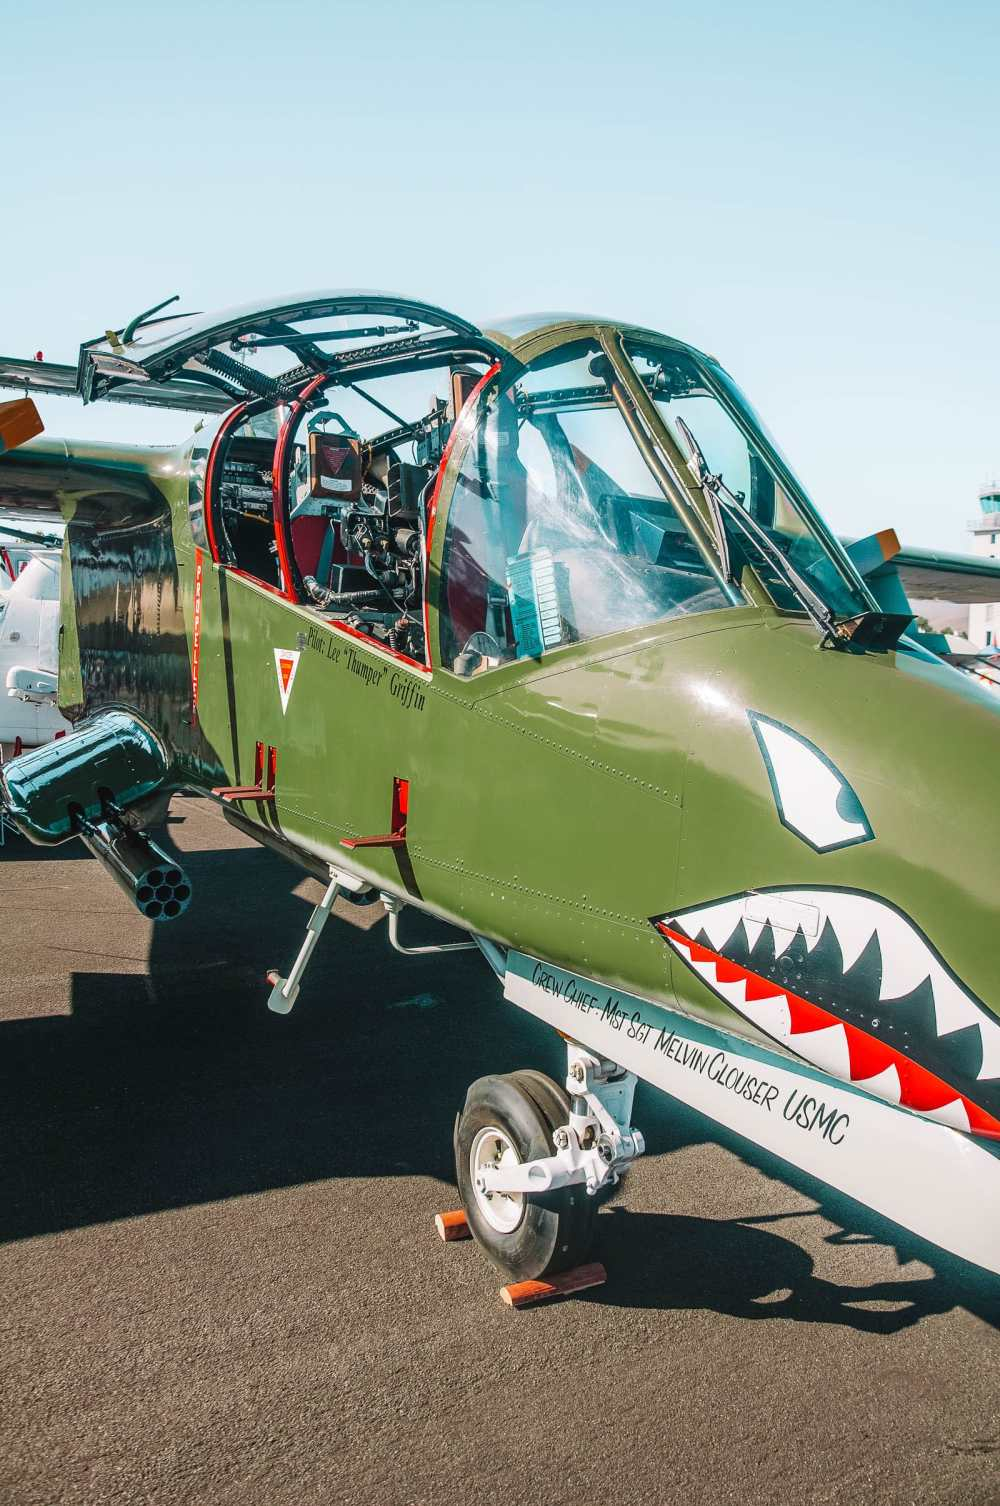 Air races that take place in Reno